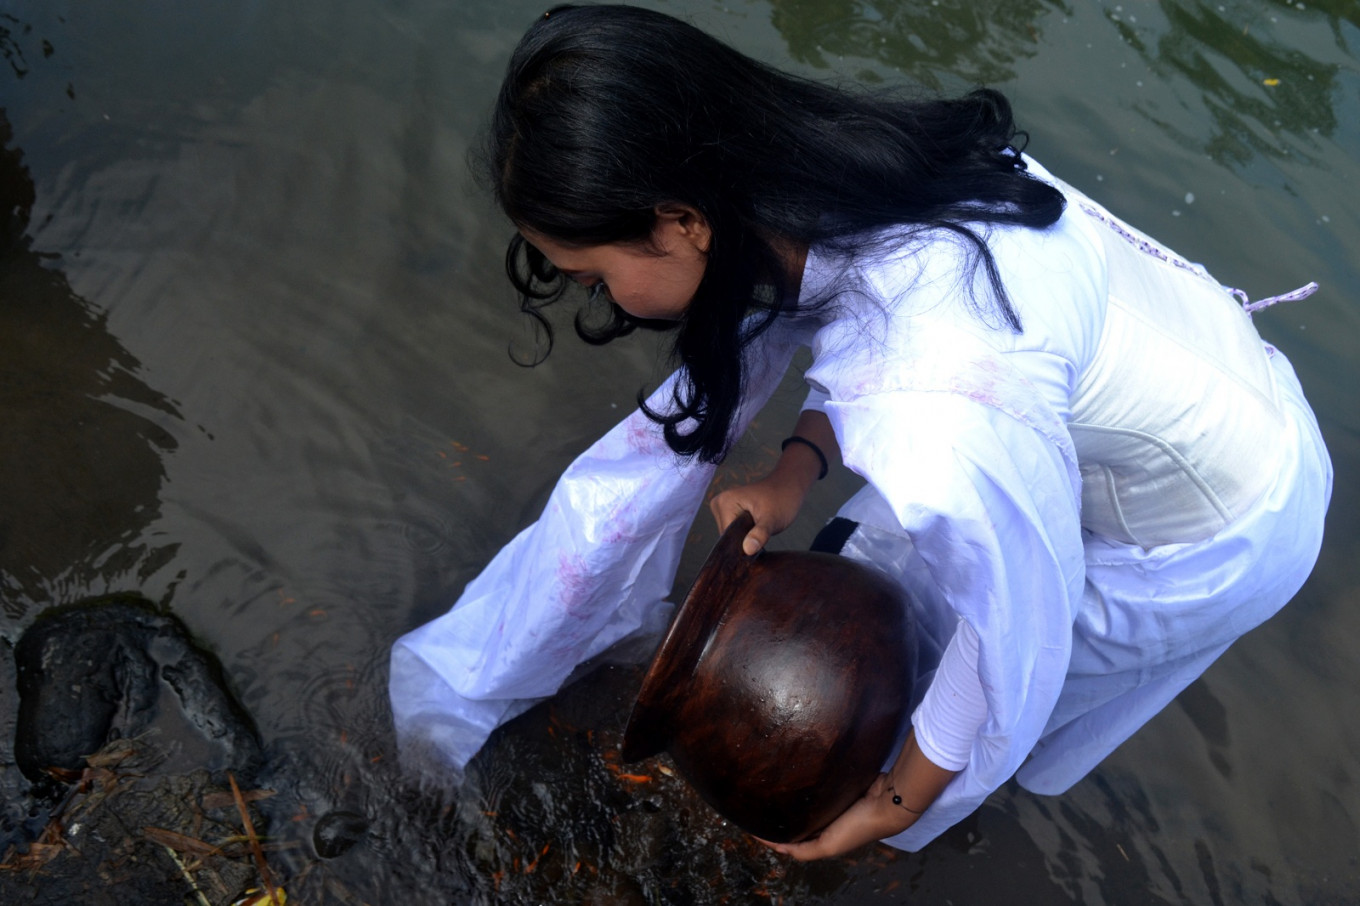 About 10,000 fish seeds are released during the festival.